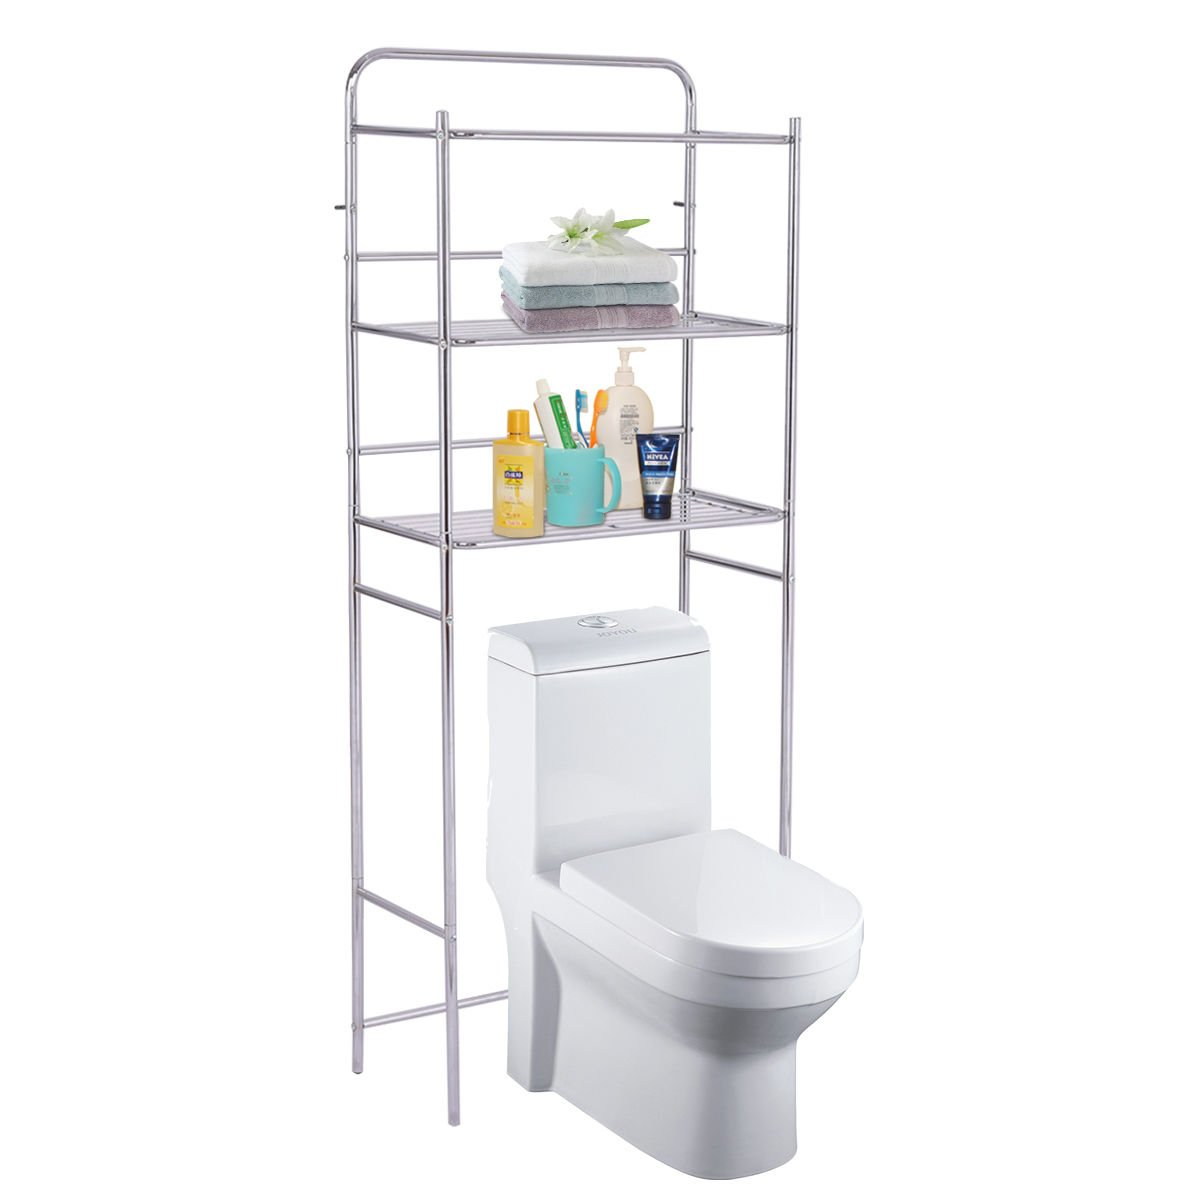 Tangkula 3-Tier Toilet Shelf Bathroom Space Saver Chrome Over The Toilet Shelf Organizer Multi-Layer Classic Design Metal Frame Study Waterproof Free Standing Bathroom Shelves